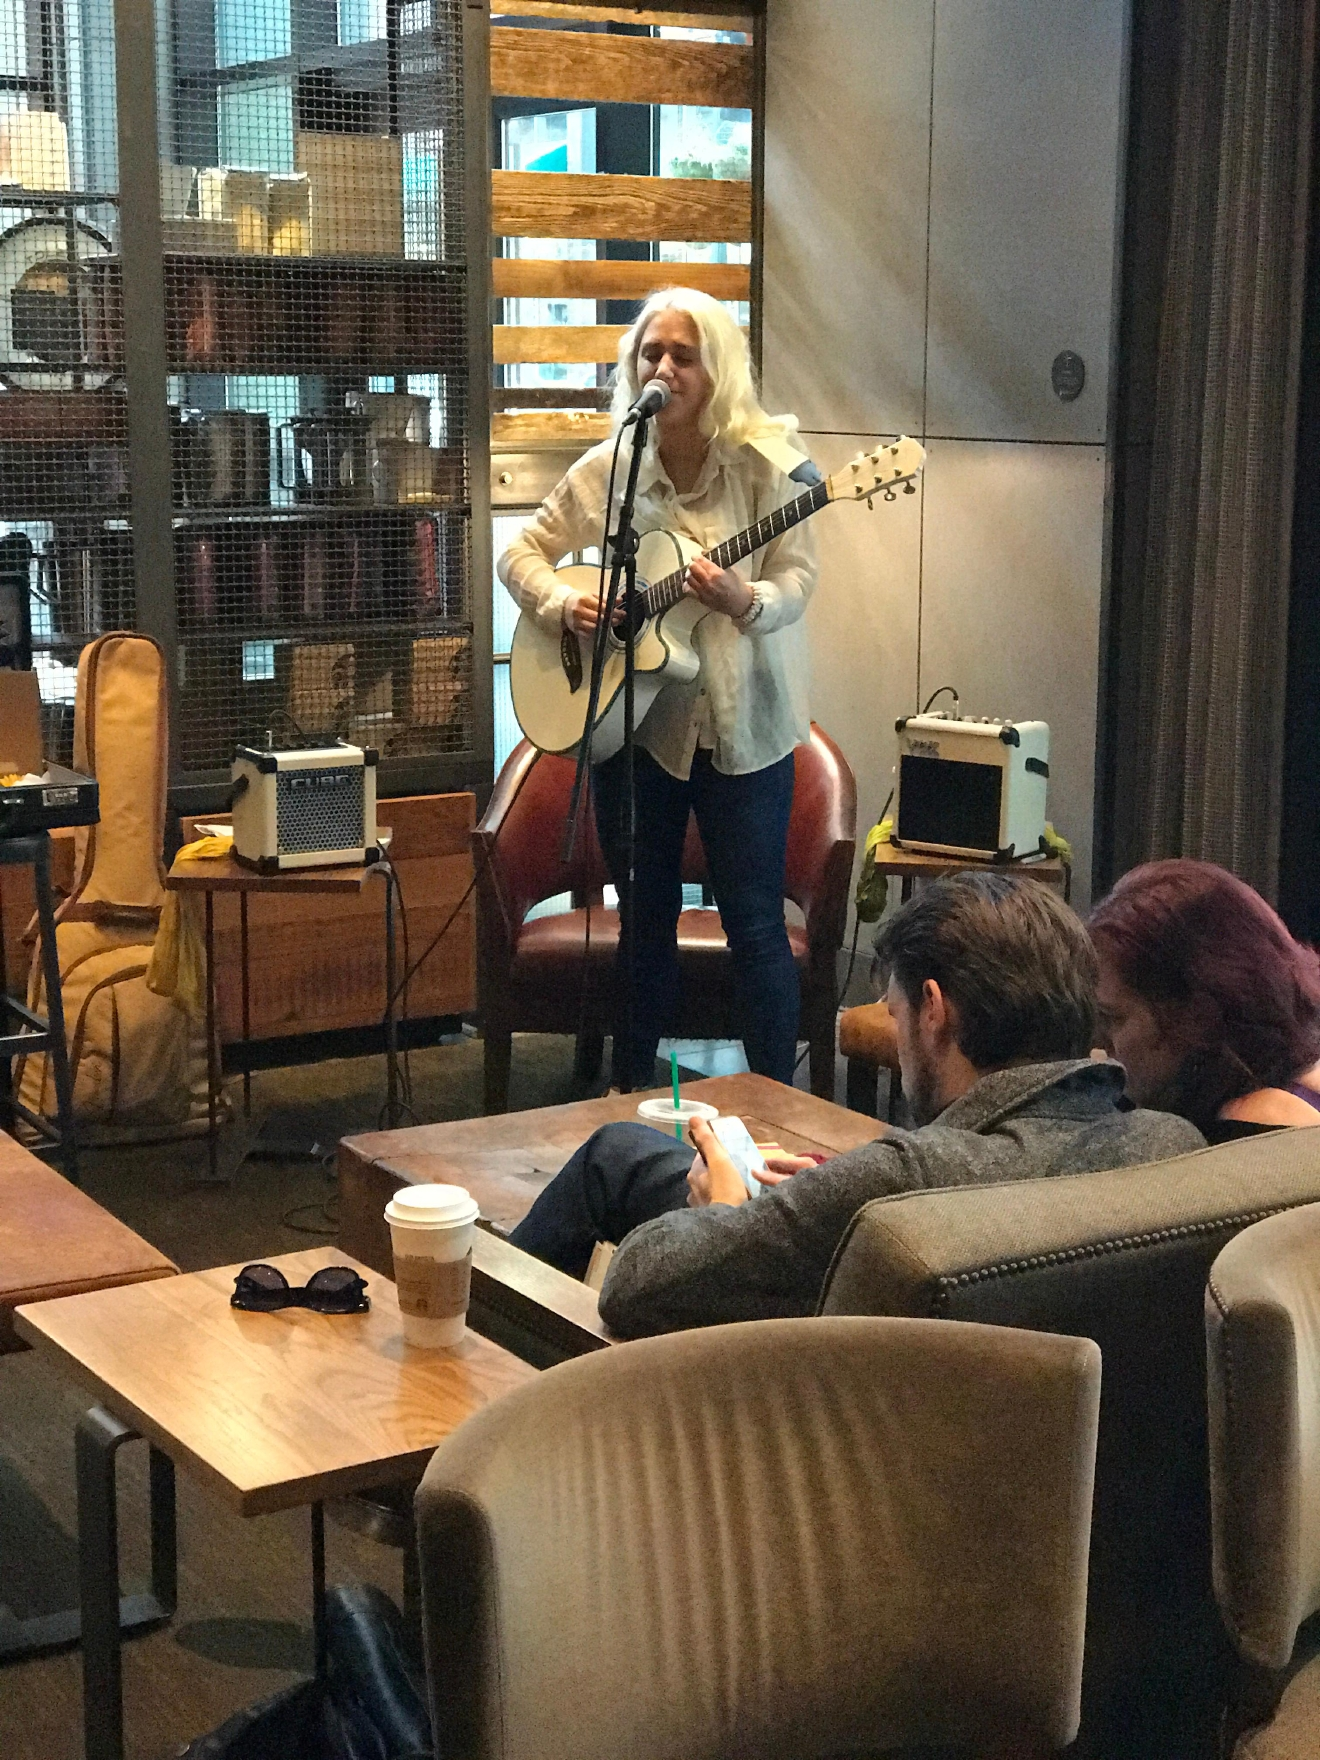 I swear, there's live music at every coffee shop in Portland, even Starbucks!  (Image: Kate Neidigh)